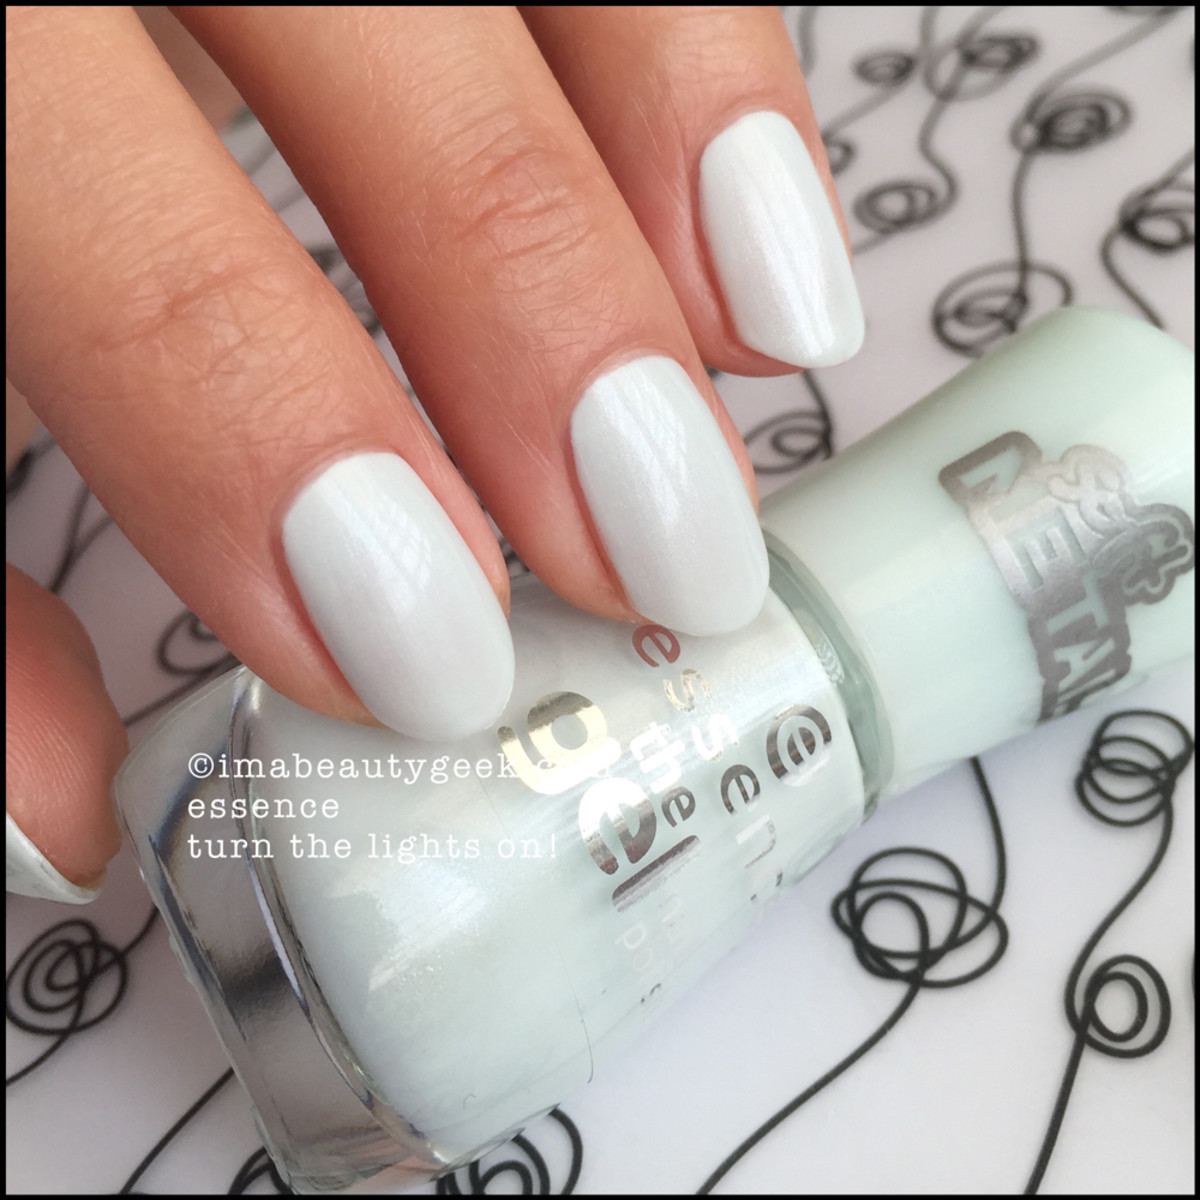 Essence Nail Polish _ Essence Turn the Lights On